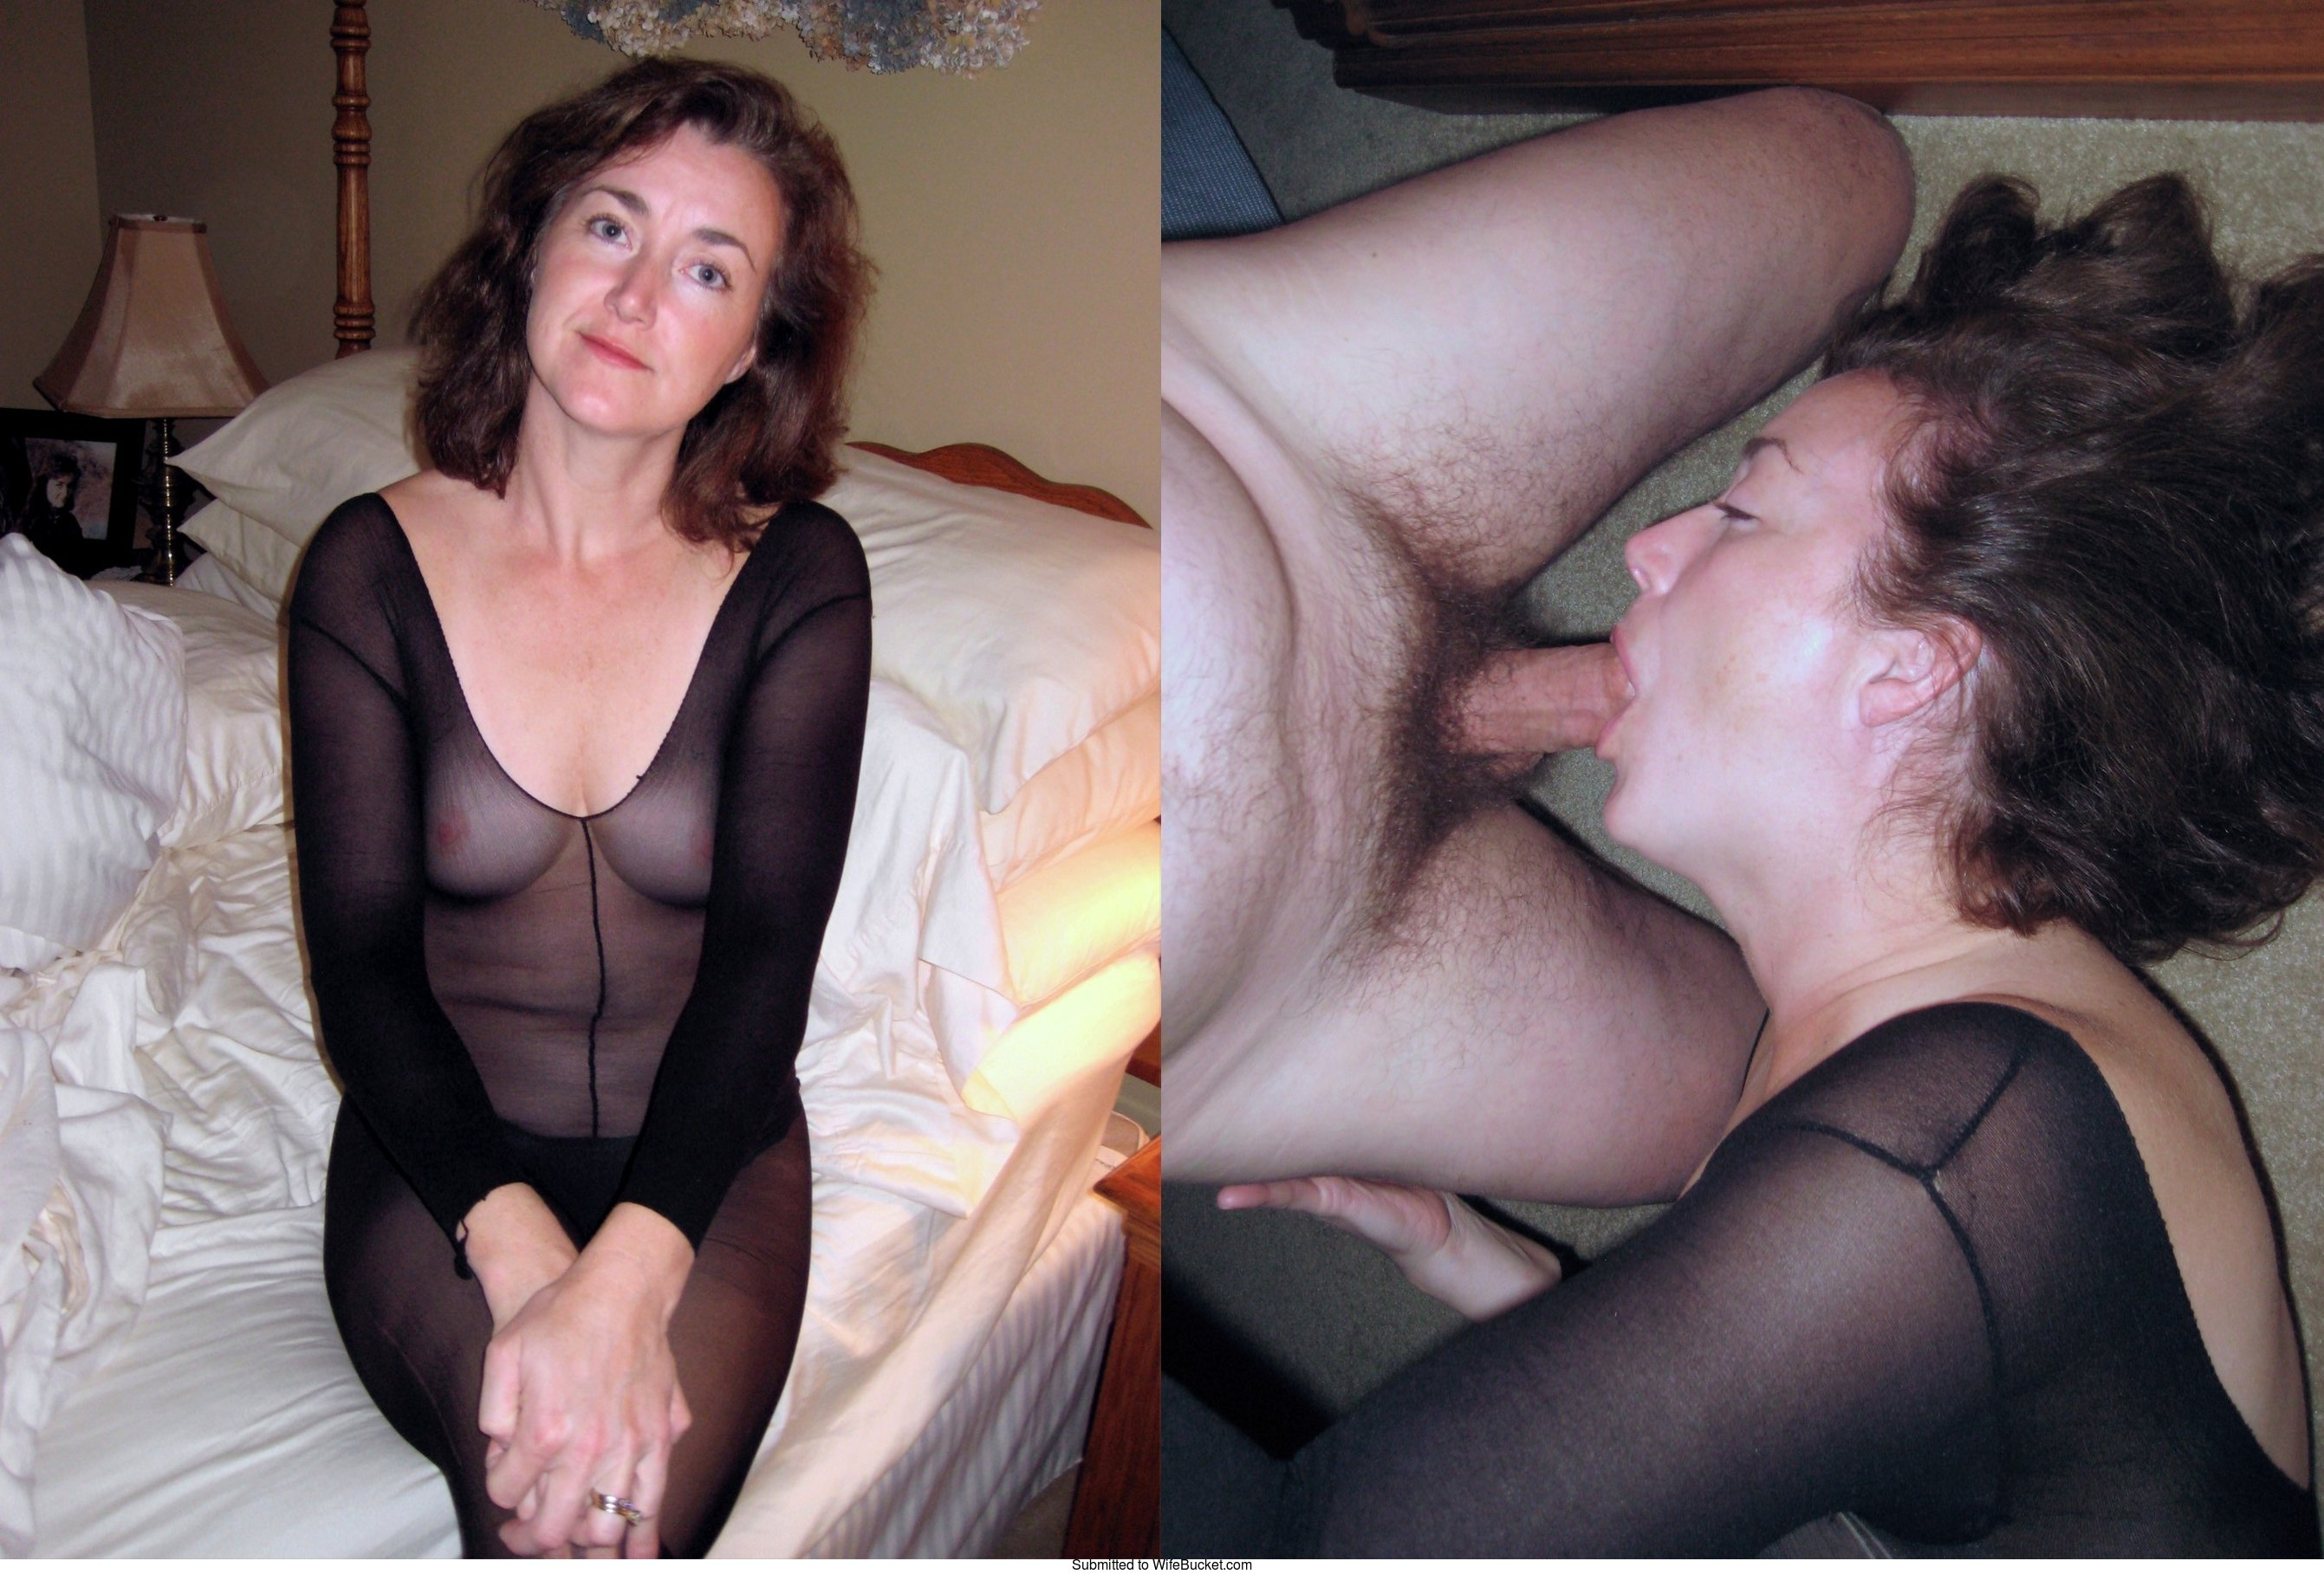 before and after sex pics